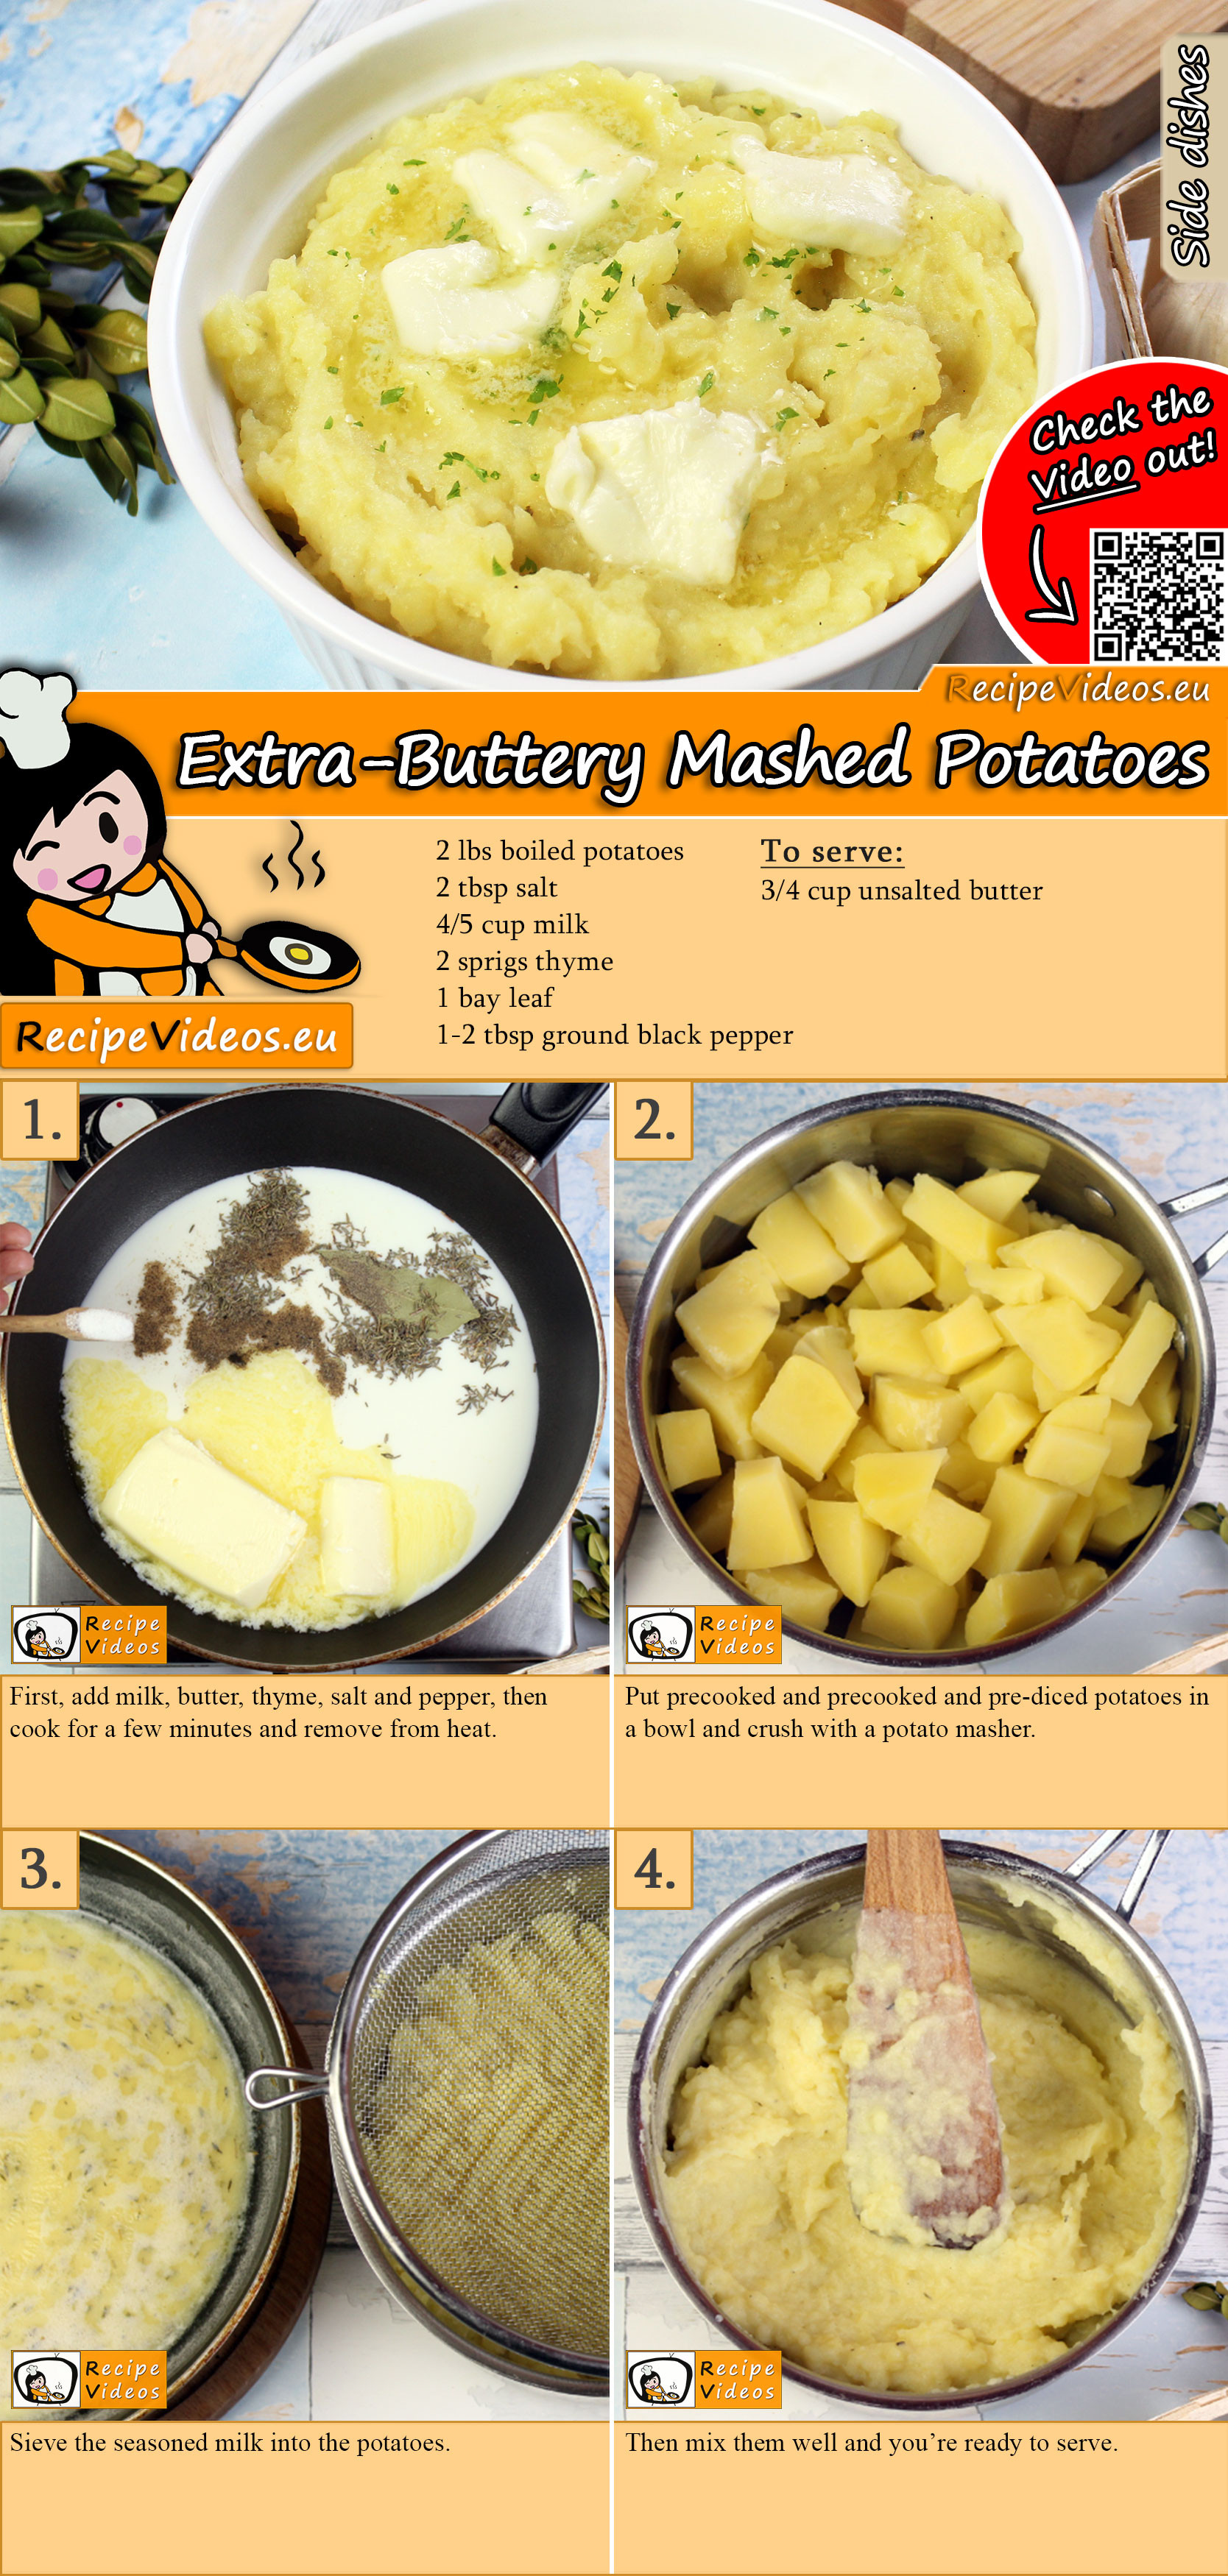 Extra-Buttery Mashed Potatoes recipe with video